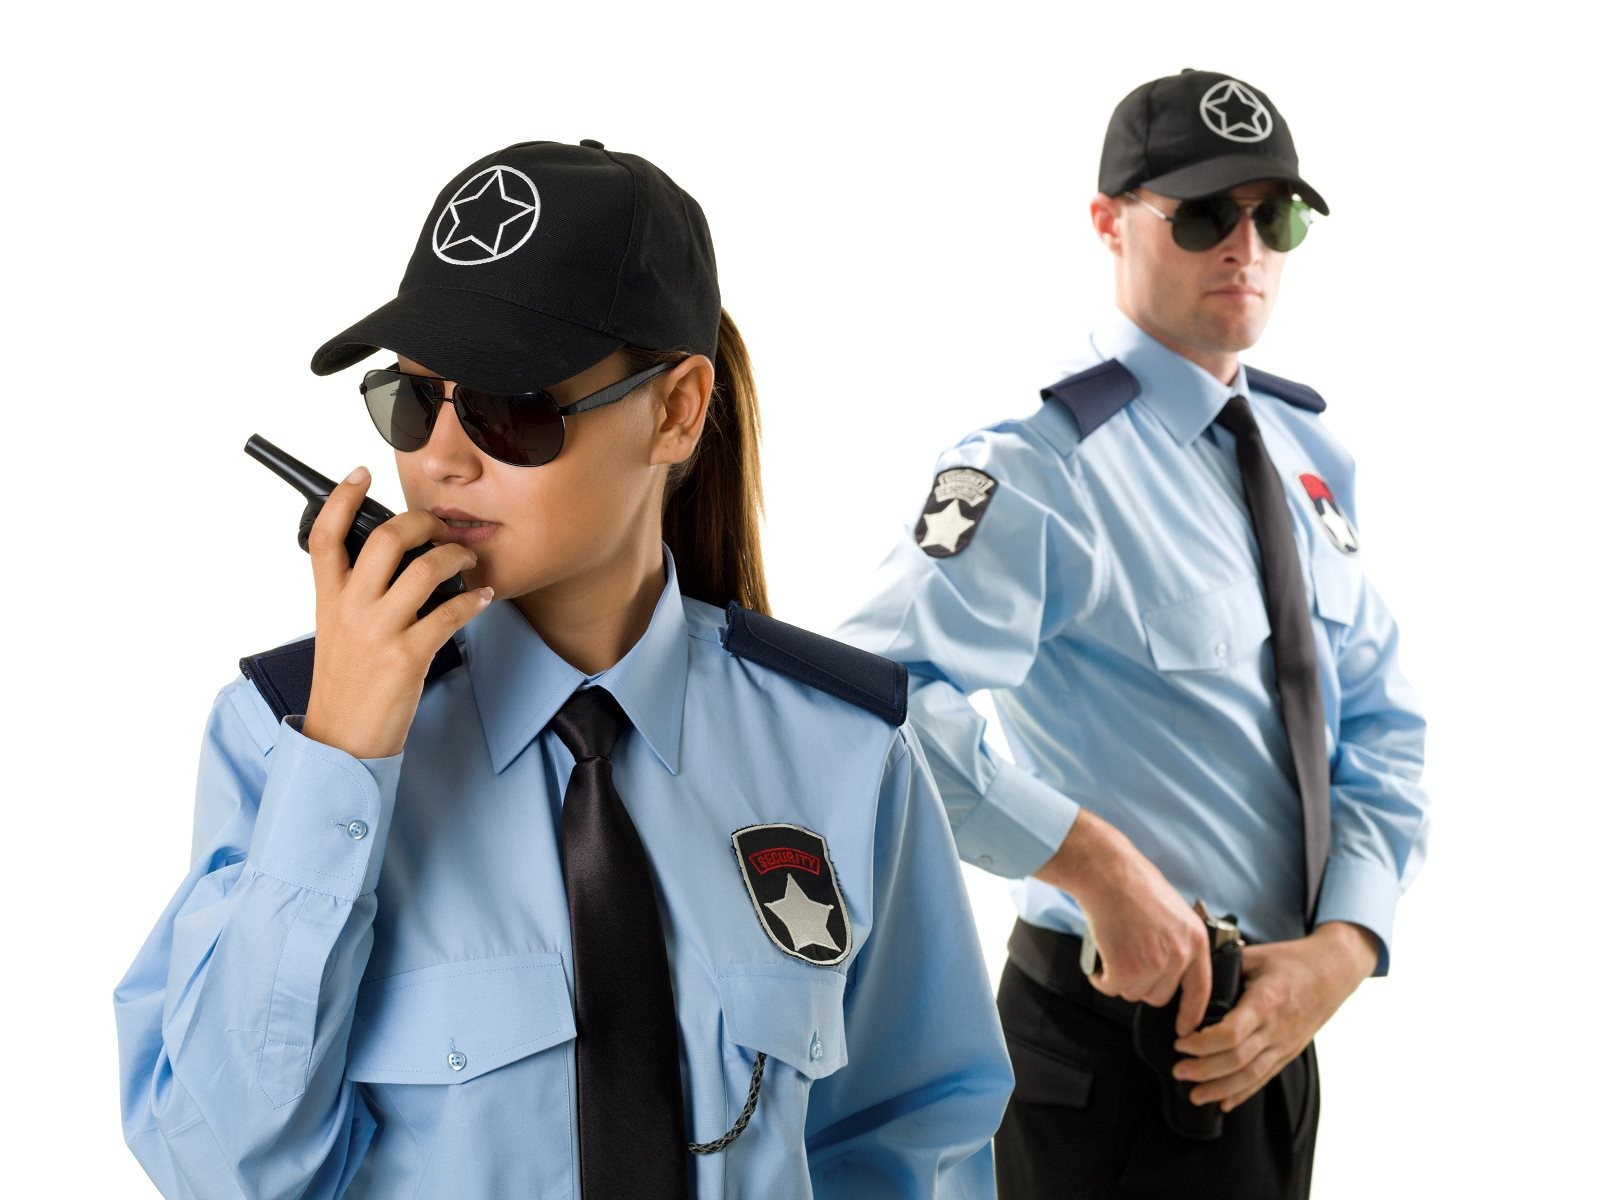 Security and surveillance service in Ahmedabad,Gujarat,Corporate service in Ahmedabad,Gujarat,Security service in Ahmedabad,Gujarat,Protection & Security Solutions Services In Ahmedabad Gujarat India,Protection & Security Solutions Services In Mumbai India